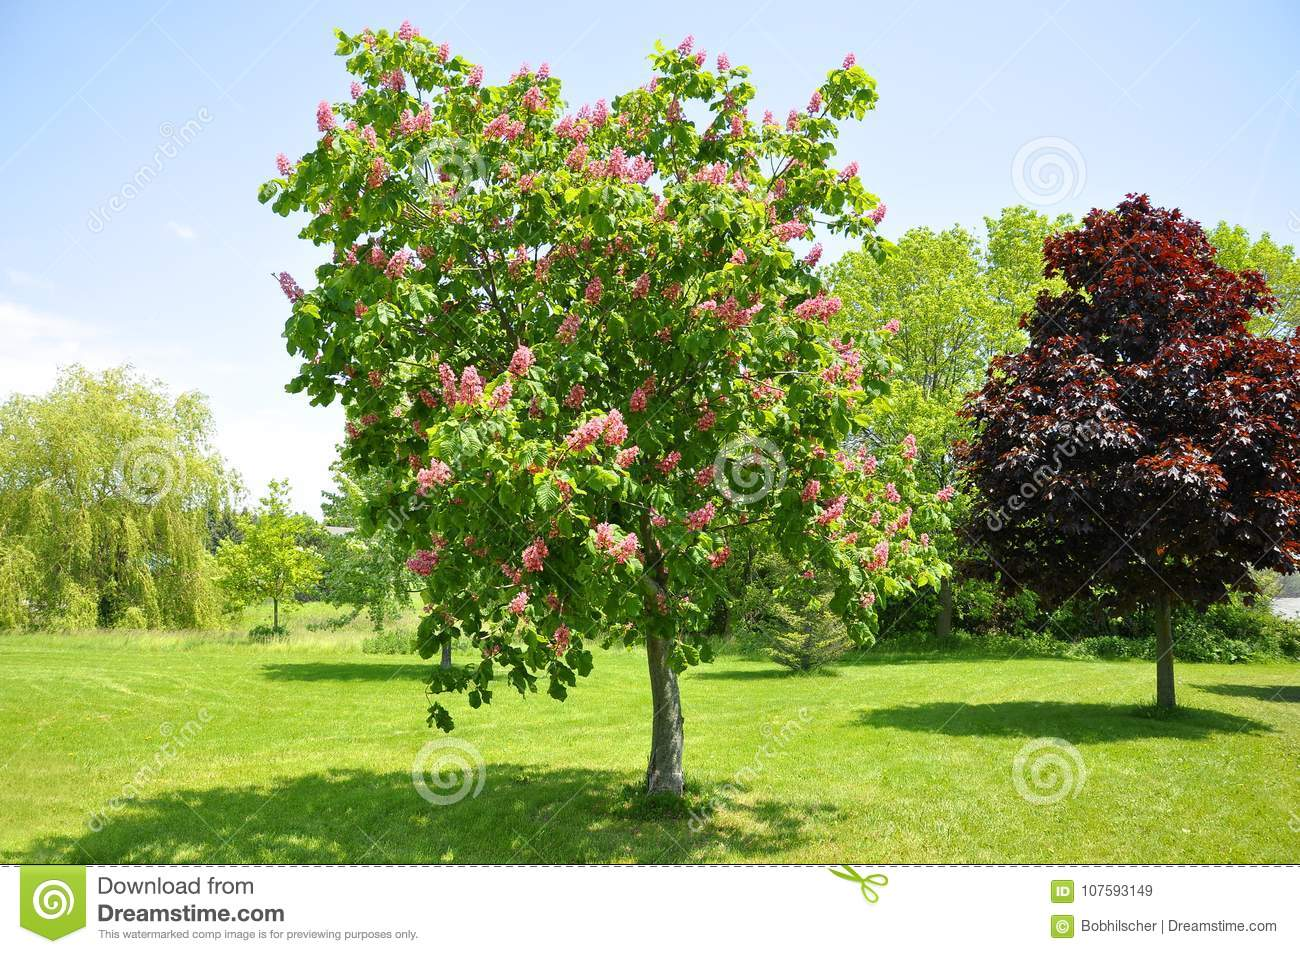 Pink flowers on red horse chestnut tree stock image image of download comp mightylinksfo